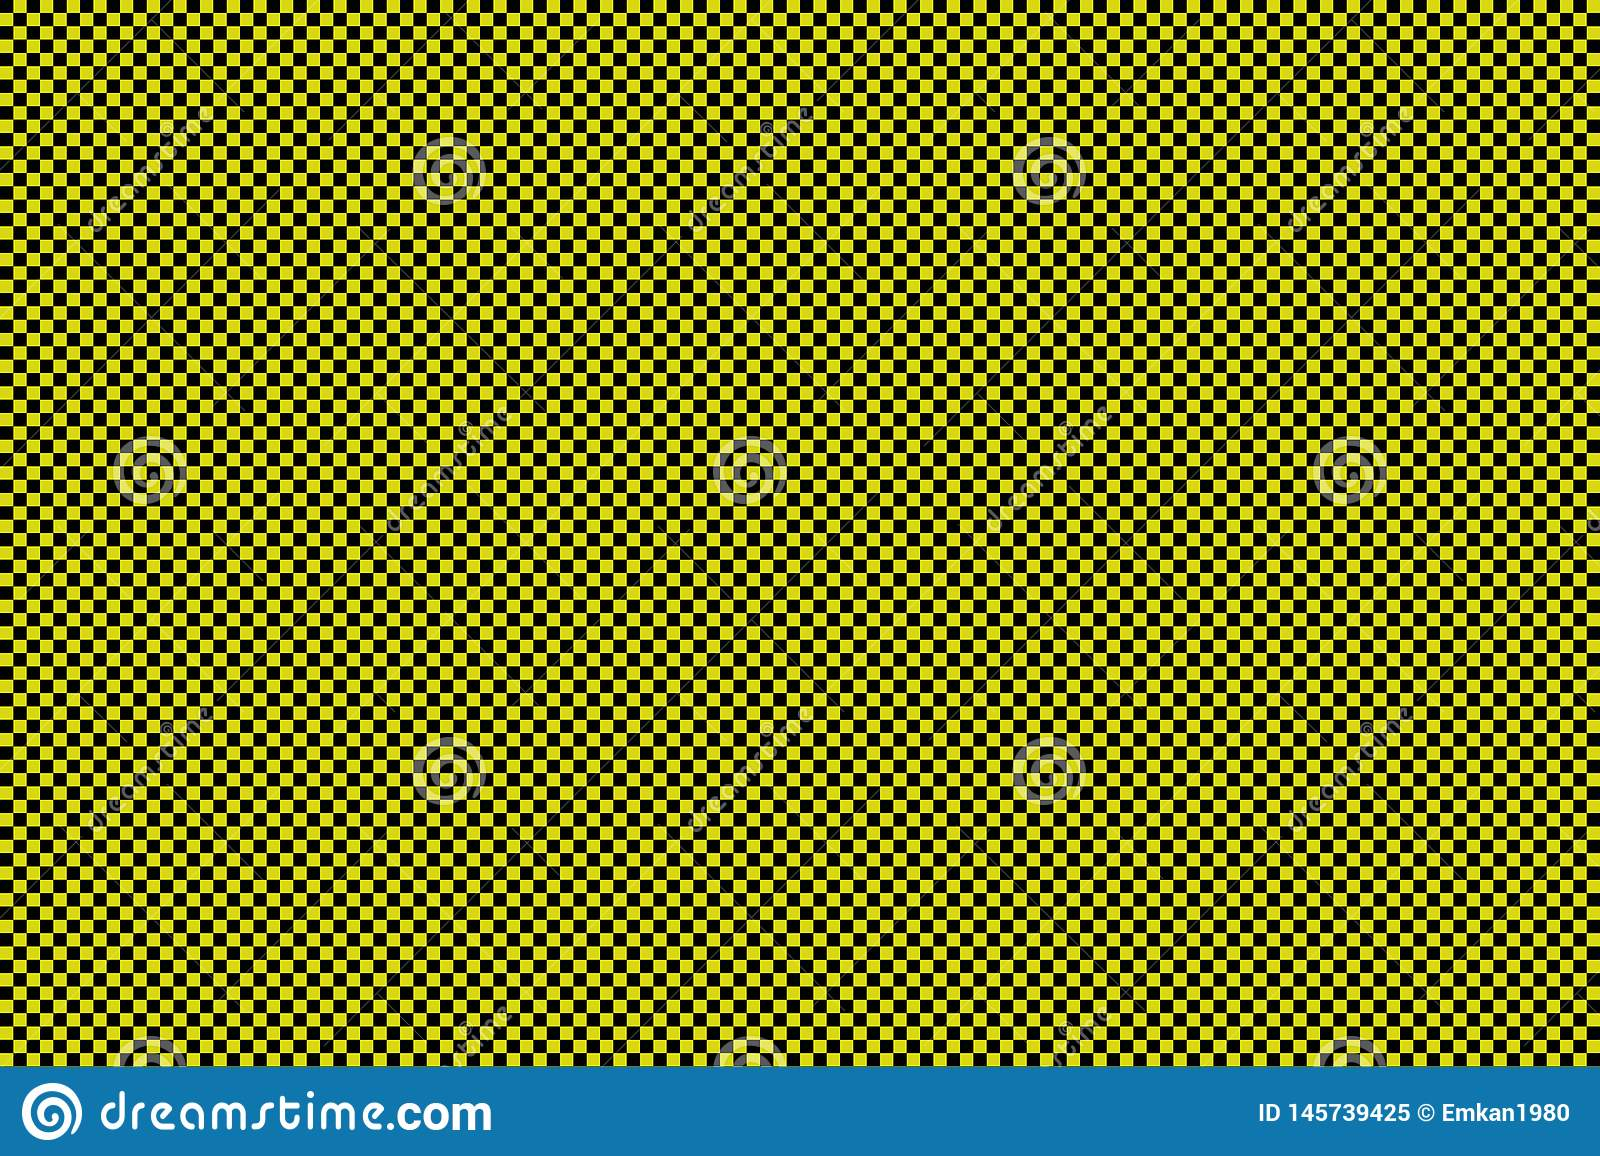 Black and yellow checkerboard background -Vector ilustration - EPS 10